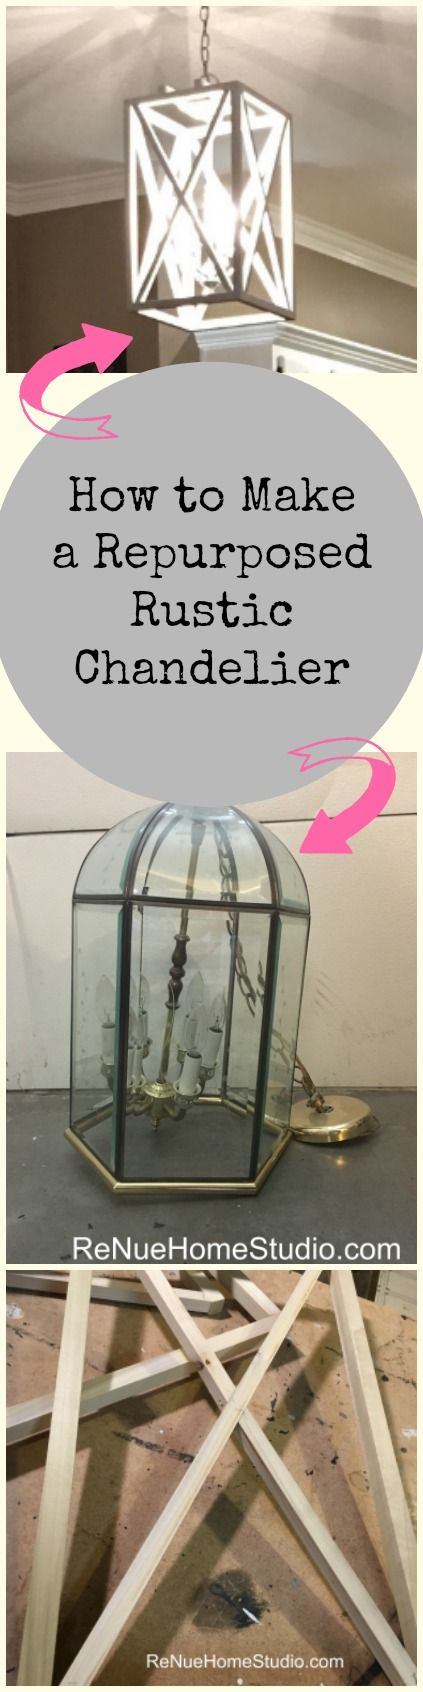 How to Make a Repurposed Rustic Chandelier.  We give you all the details to repurpose an old chandelier or use a pendant light kit to build your own custom made light fixture.  Plug In, Chandeliers, Pendant Light, Lights, Lighting, Kitchen, Entryway, Living Room, Remodeling, Remodel, Fixer Upper, HGTV, Shabby Chic, Modern Rustic, Industrial, Country Living, Southern Living, Loft, Craft, Crafty, Power Tools, Brad Nailer, Ryobi